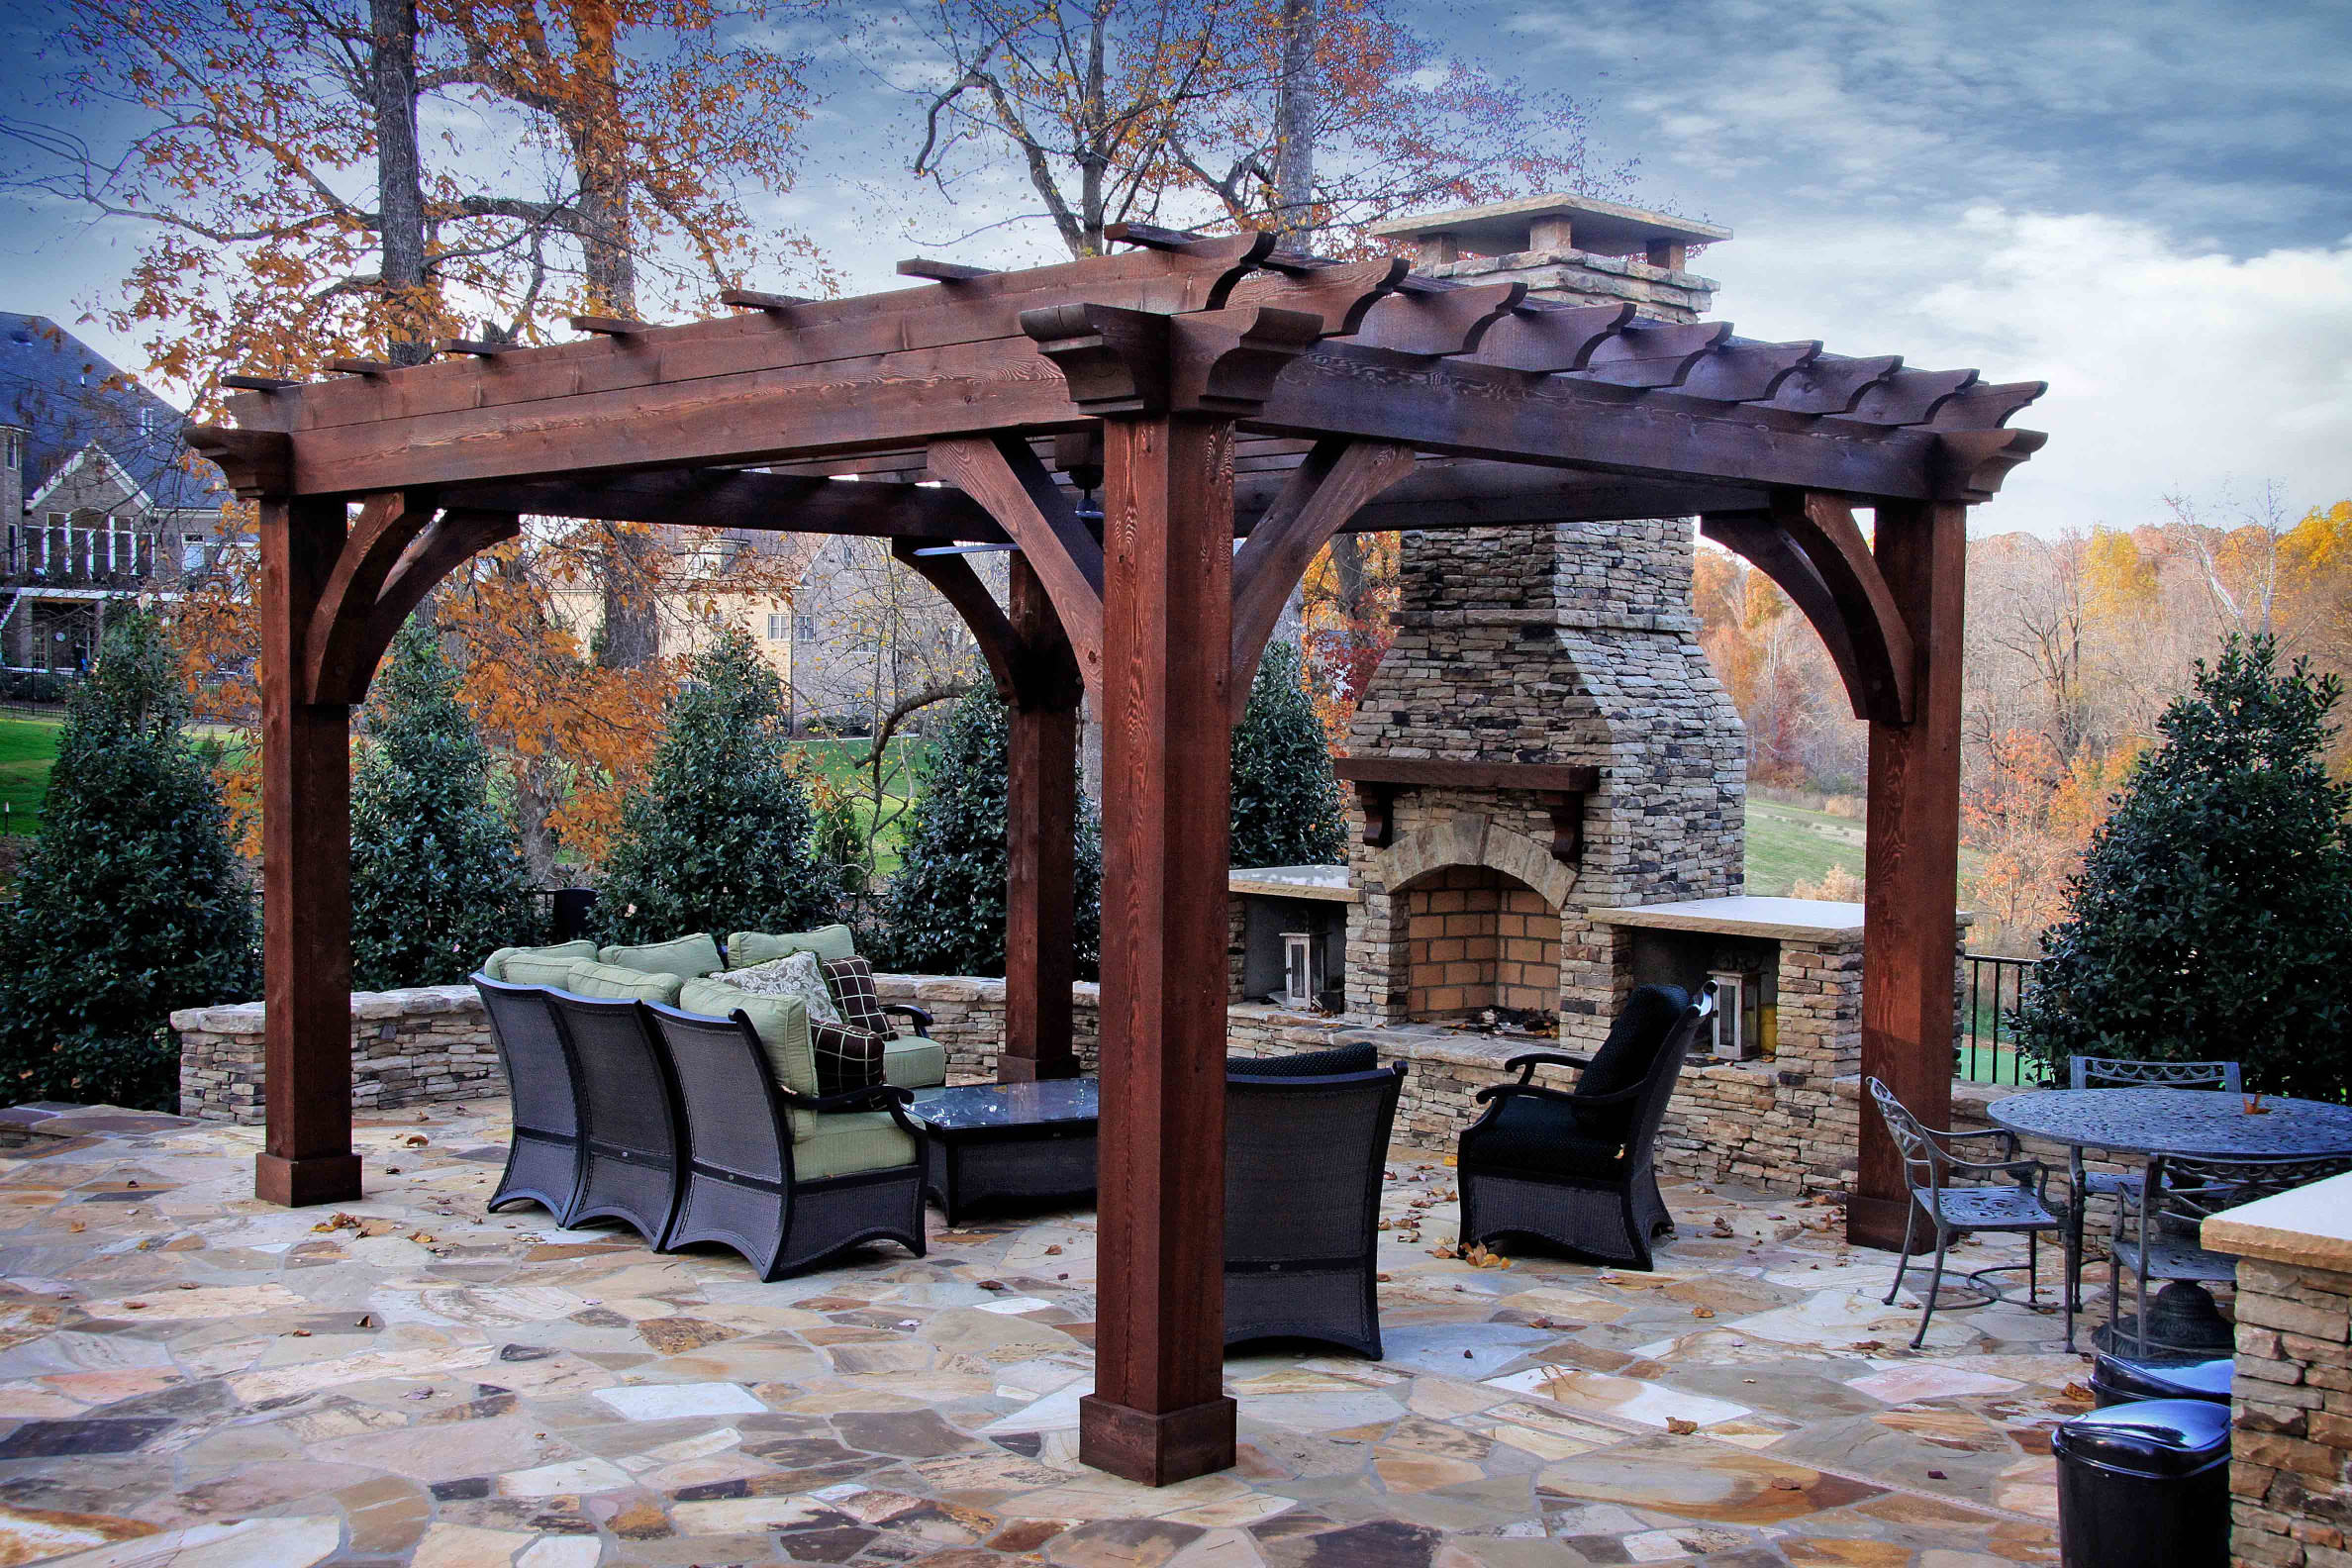 This wood pergola is a great way to add shade and appeal to this pool.